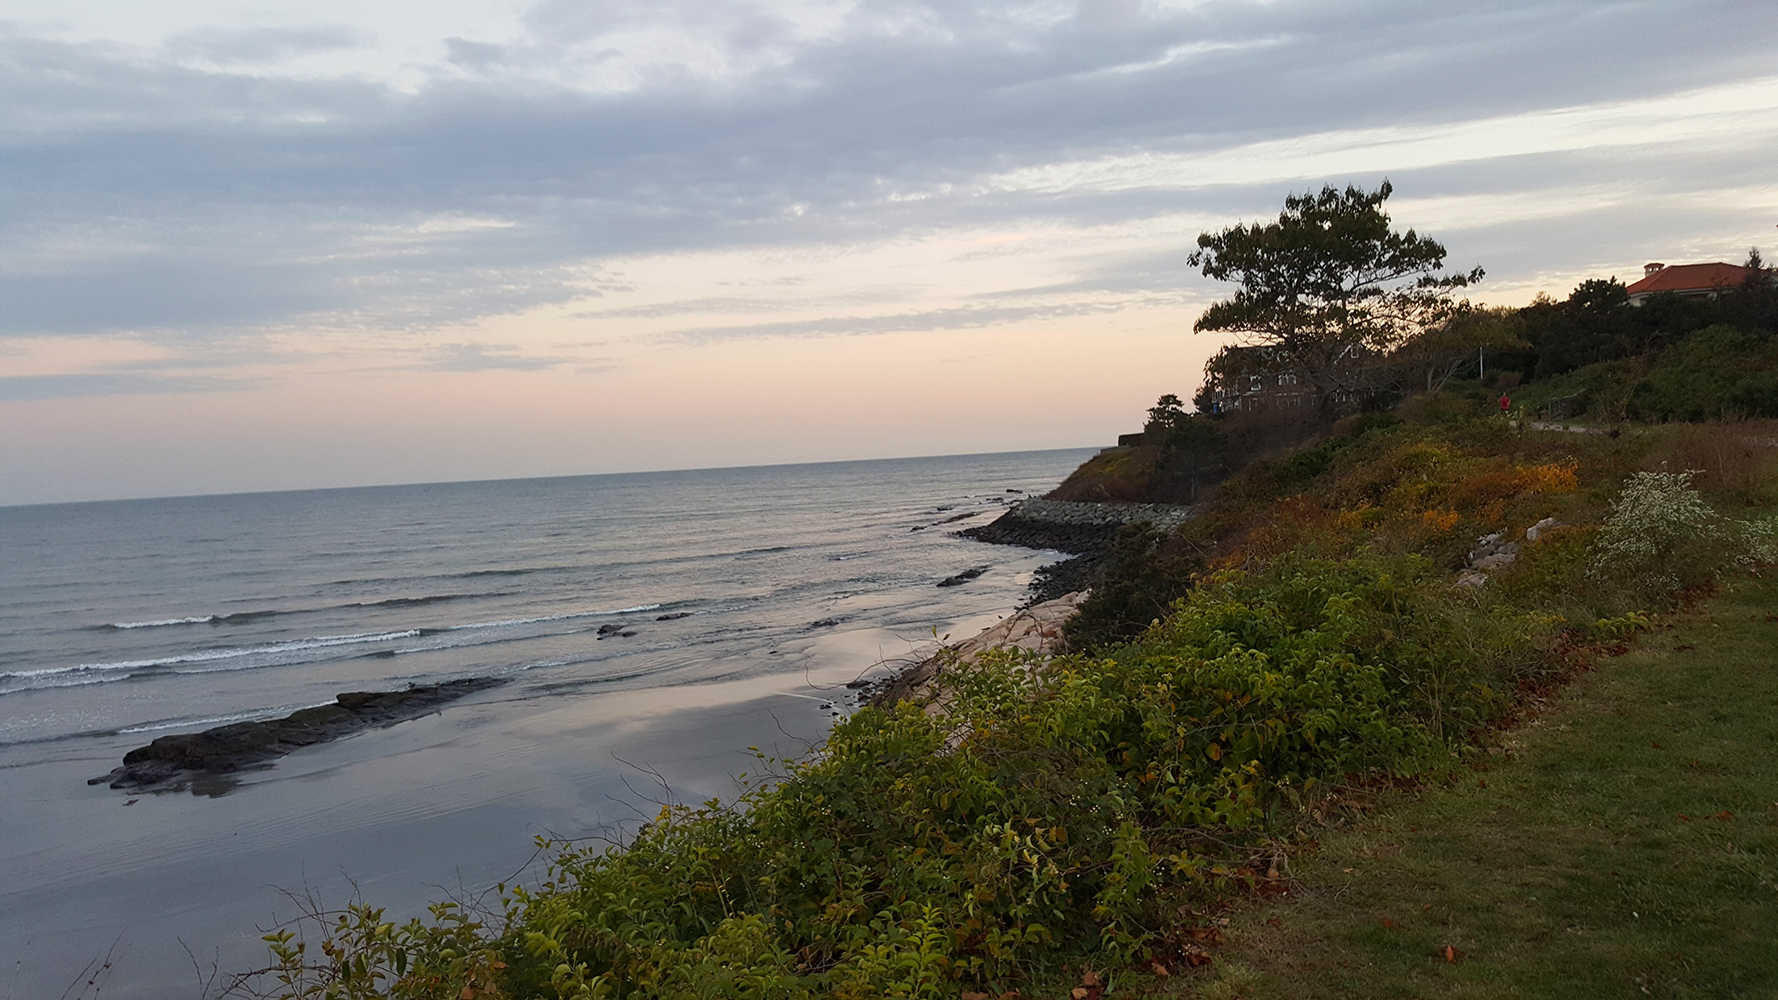 The Cliff Walk at sunset